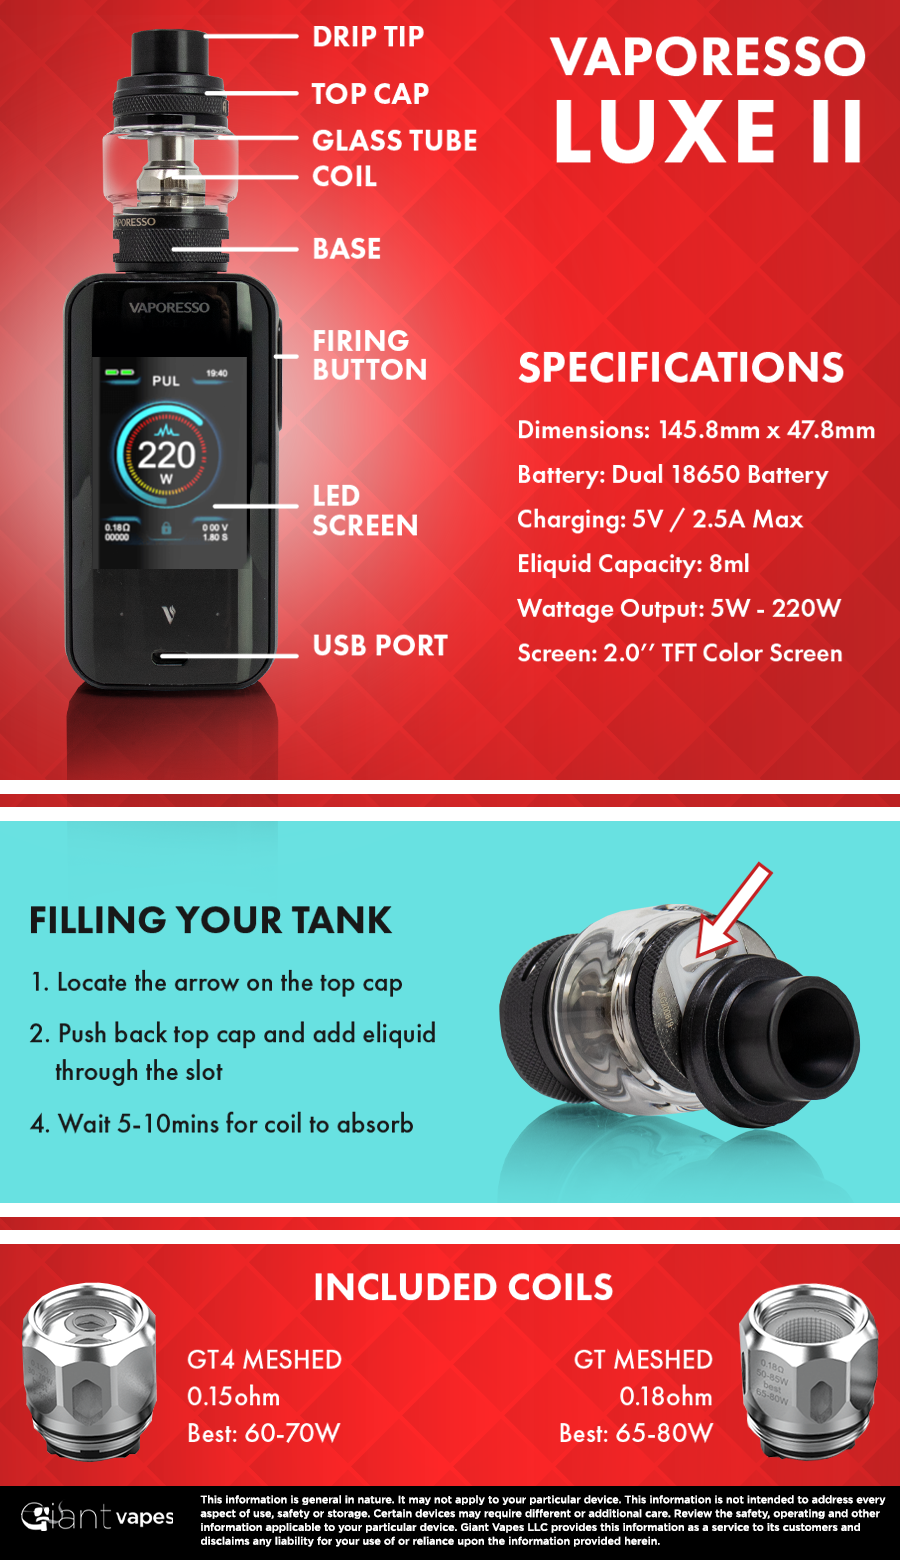 Vaporesso LUXE 2 Kit Infographic